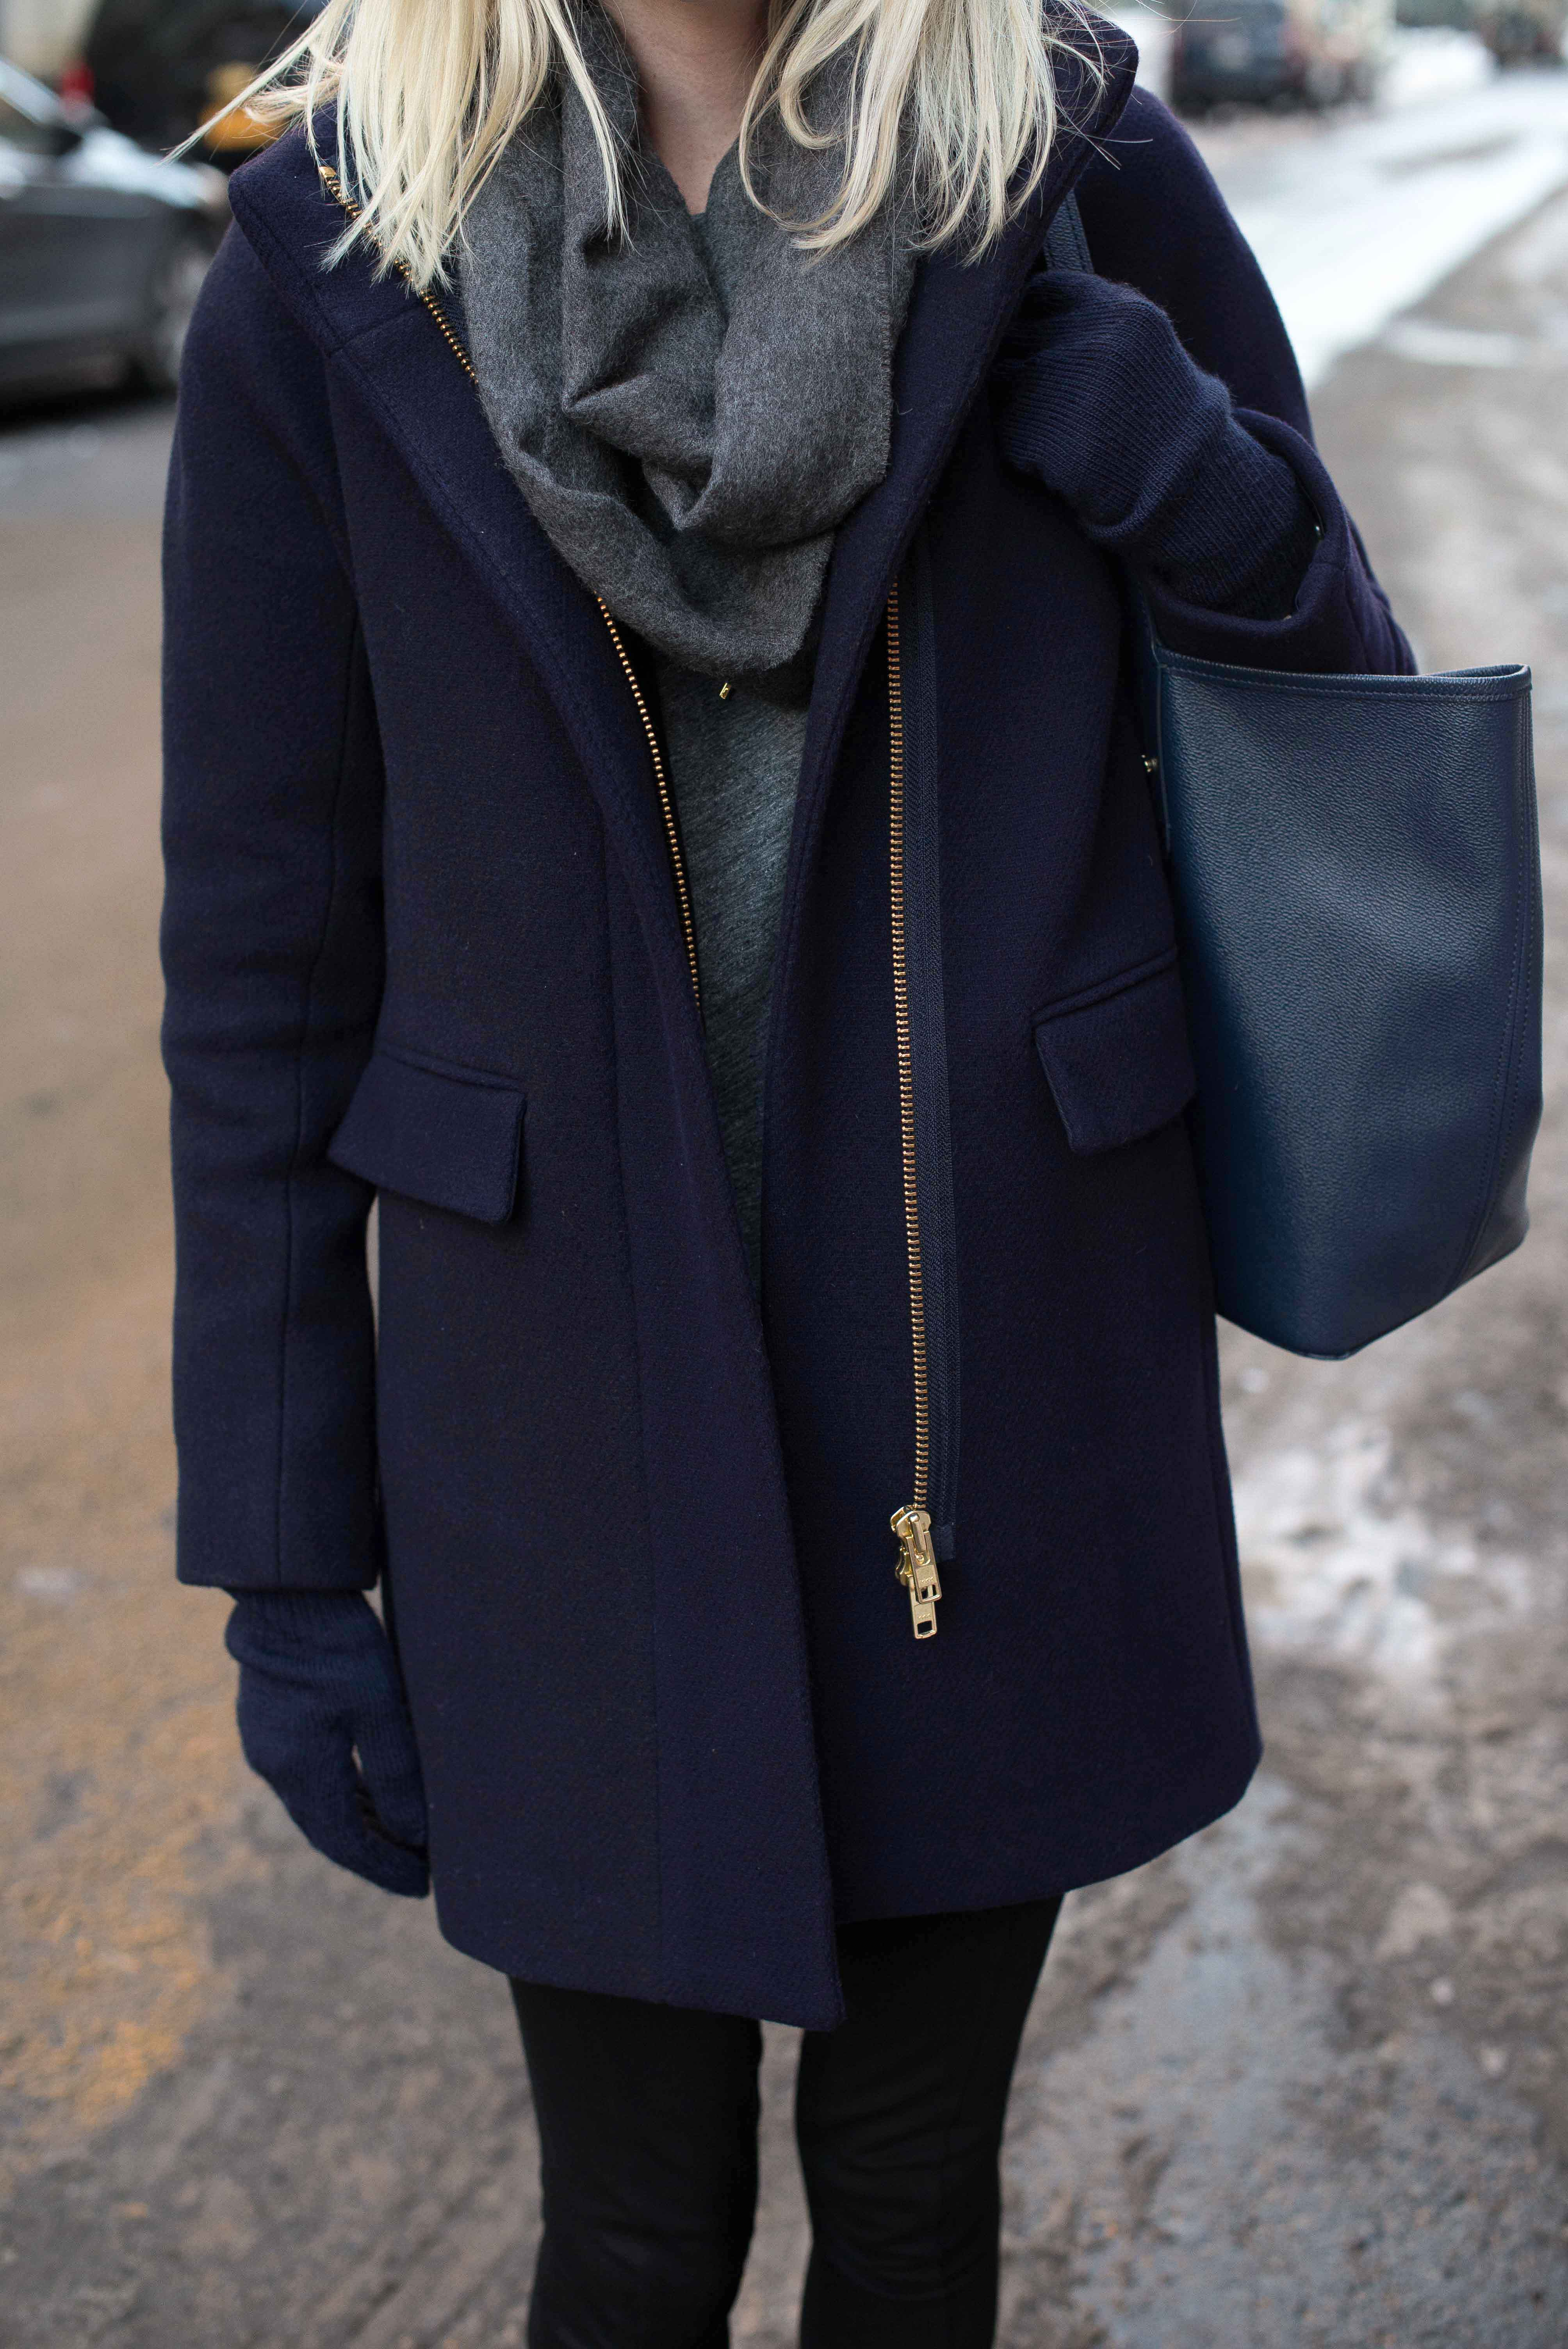 ask kelly winter coats shoes for nyc and a time management #0: jcrew cocoon coat navy 1